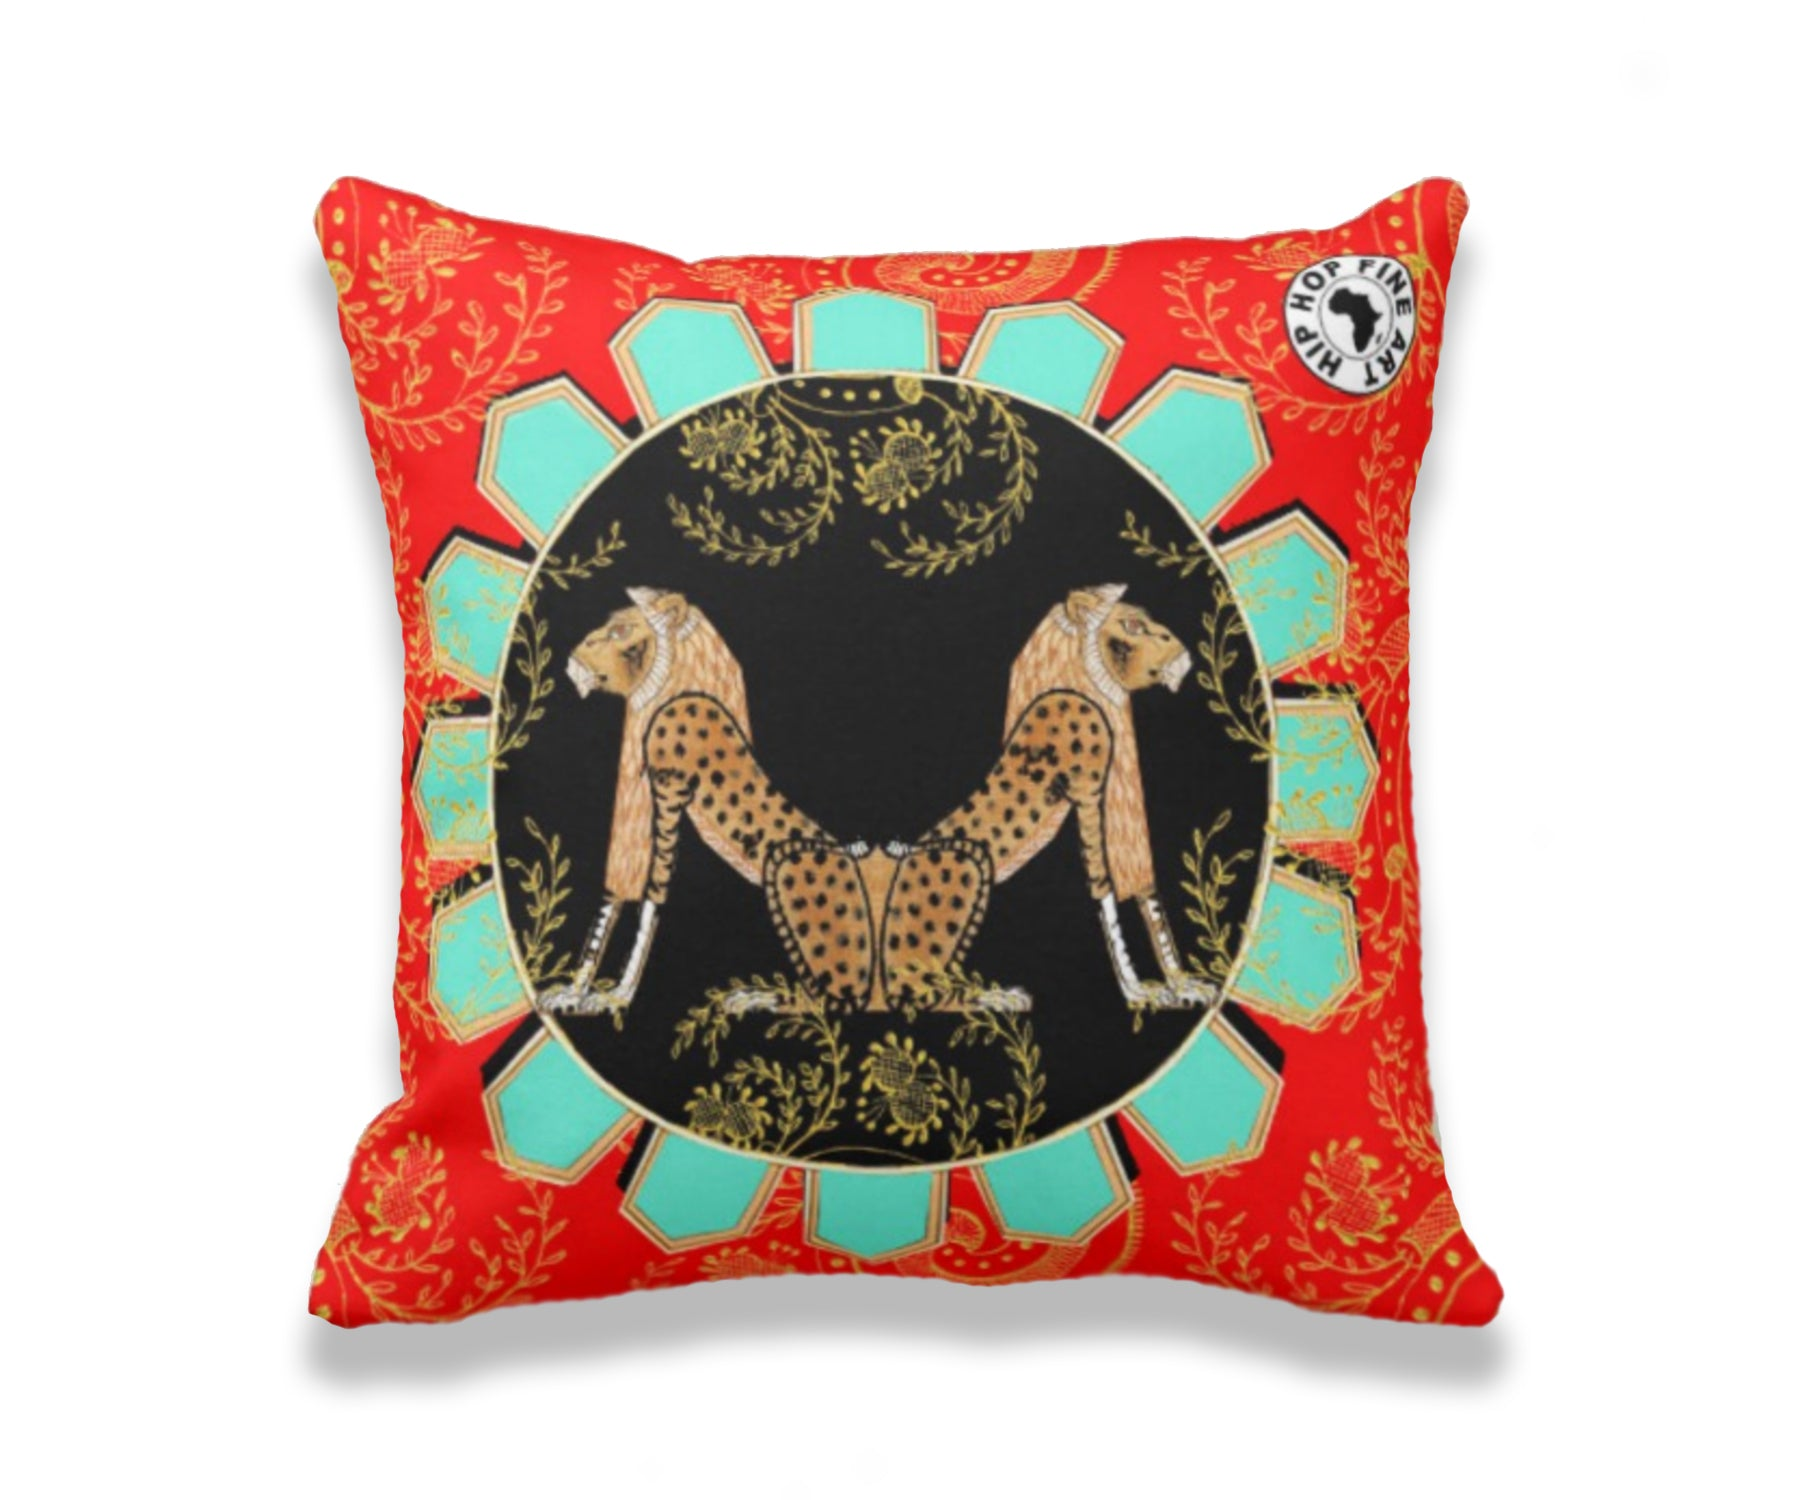 Strength and Wisdom by Hip Hop Fine Art, Designer Throw Pillow